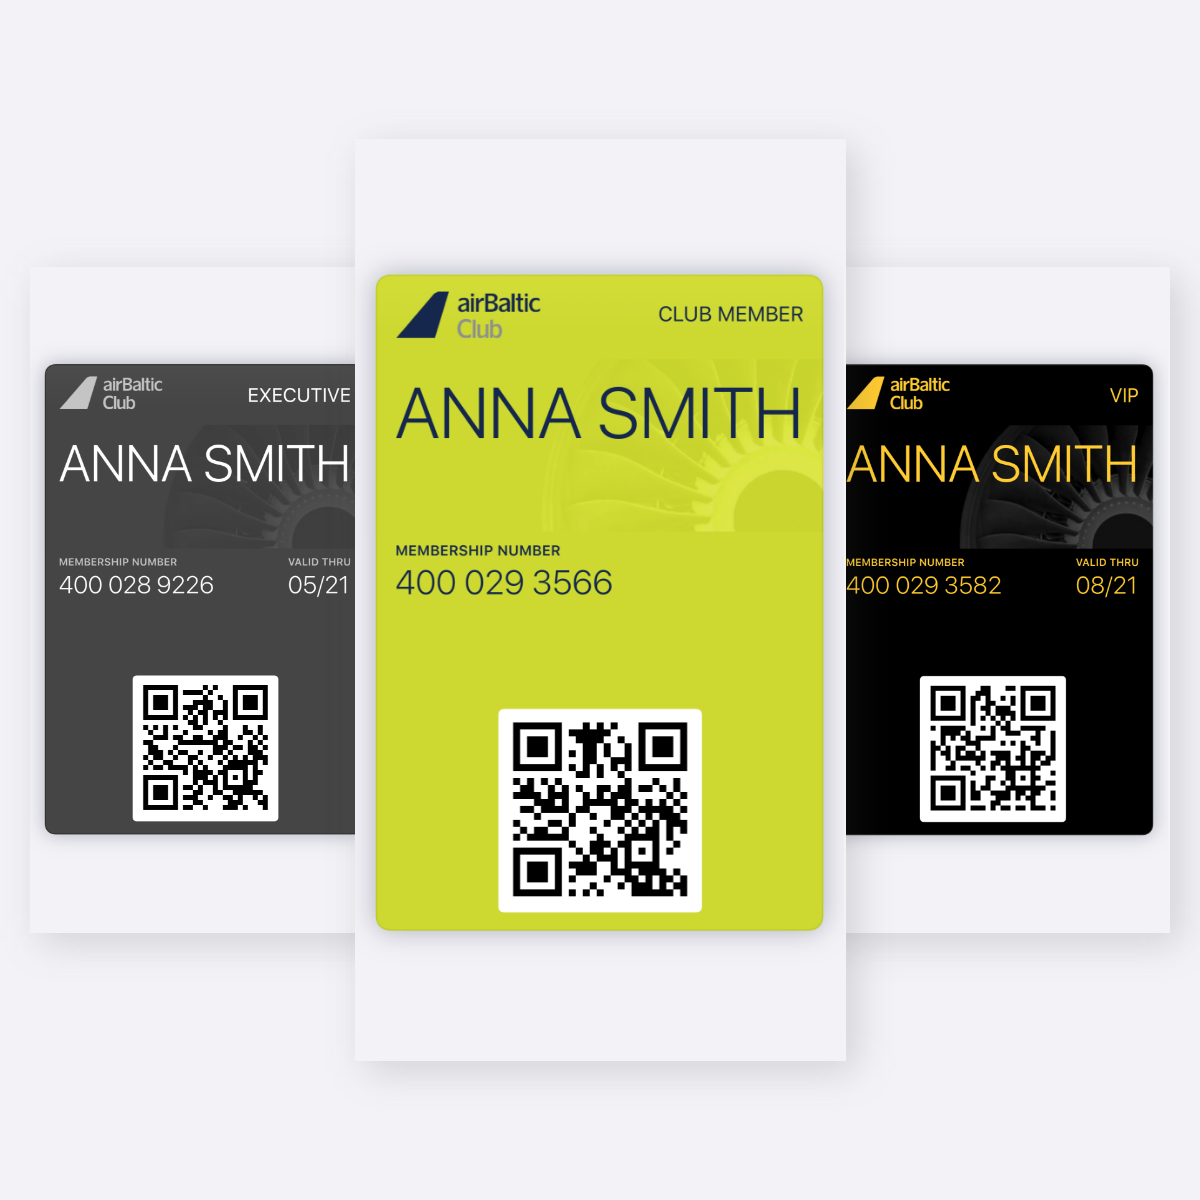 Introducing the new digital airBaltic Club cards image